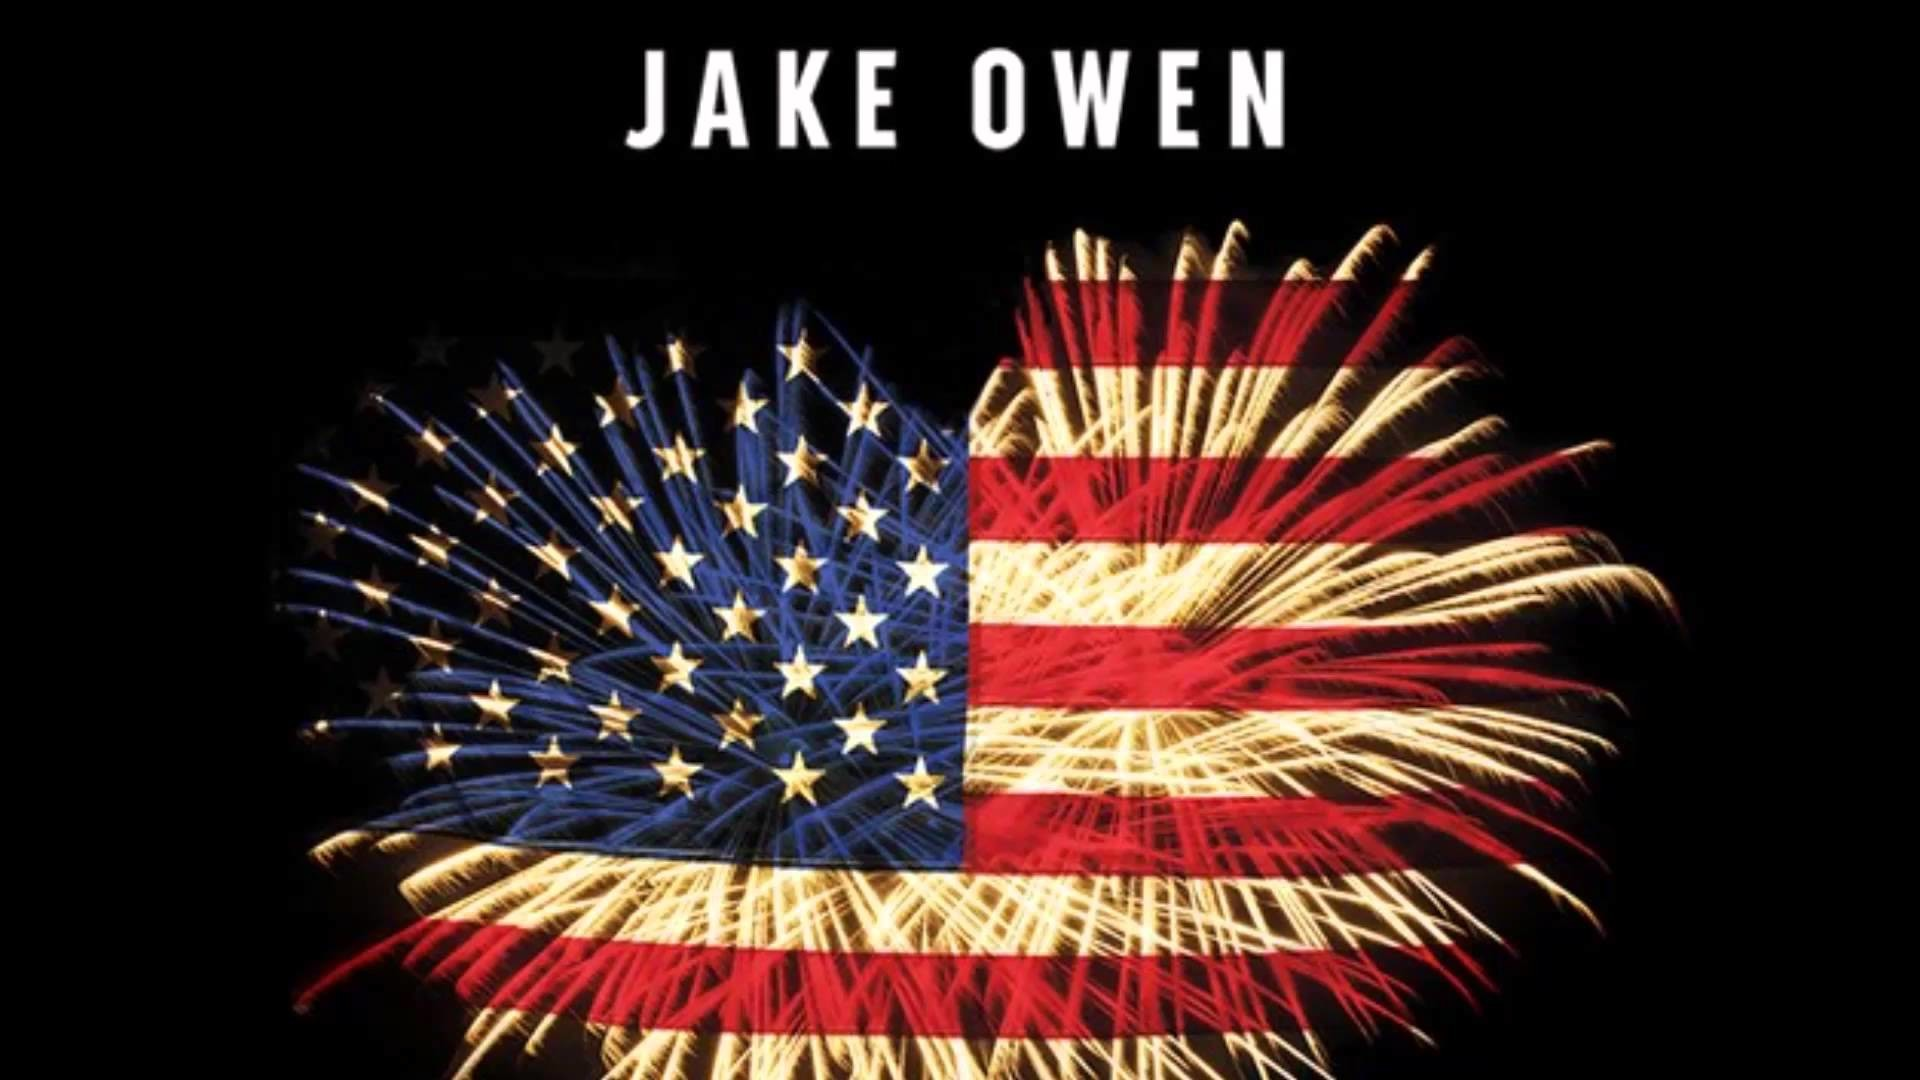 Res: 1920x1080, Jake Owen American Country Love Song HQ